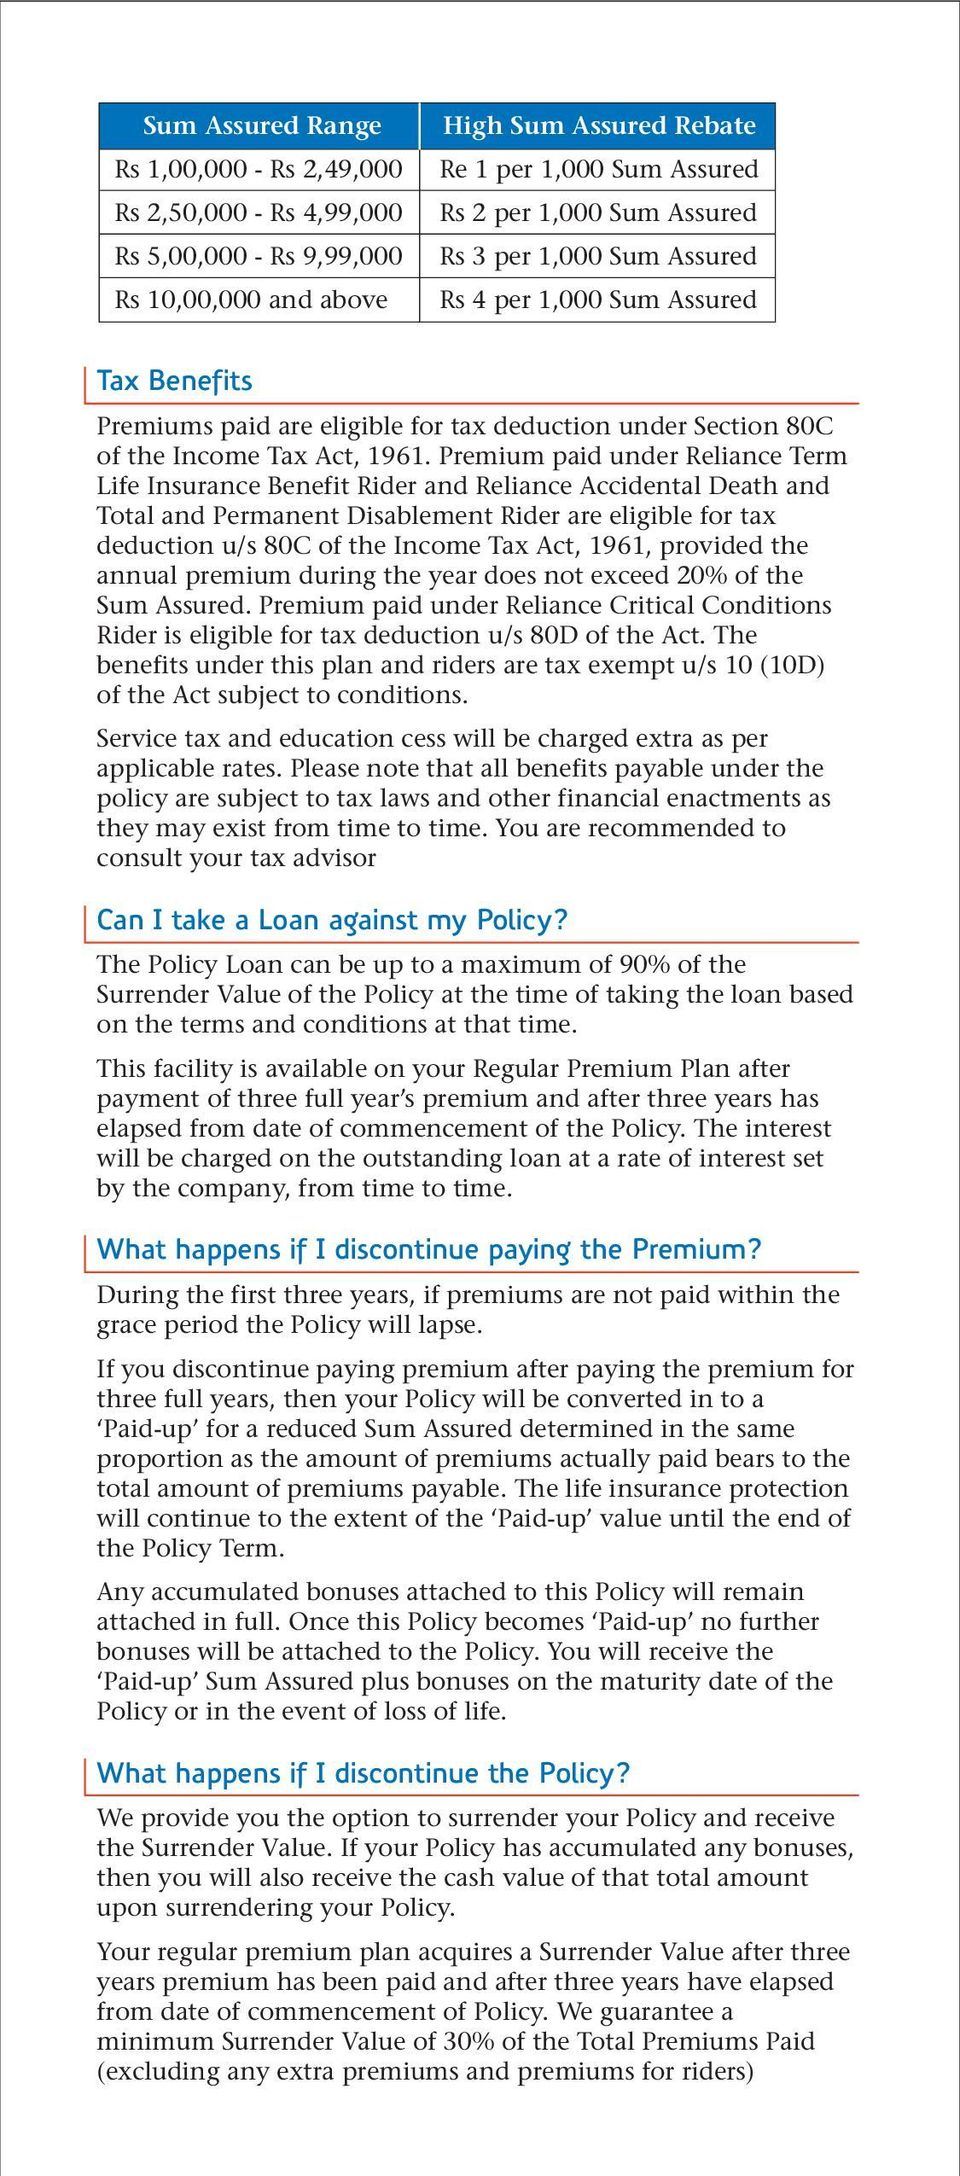 Premium paid under Reliance Term Life Insurance Benefit Rider and Reliance Accidental Death and Total and Permanent Disablement Rider are eligible for tax deduction u/s 80C of the Income Tax Act,